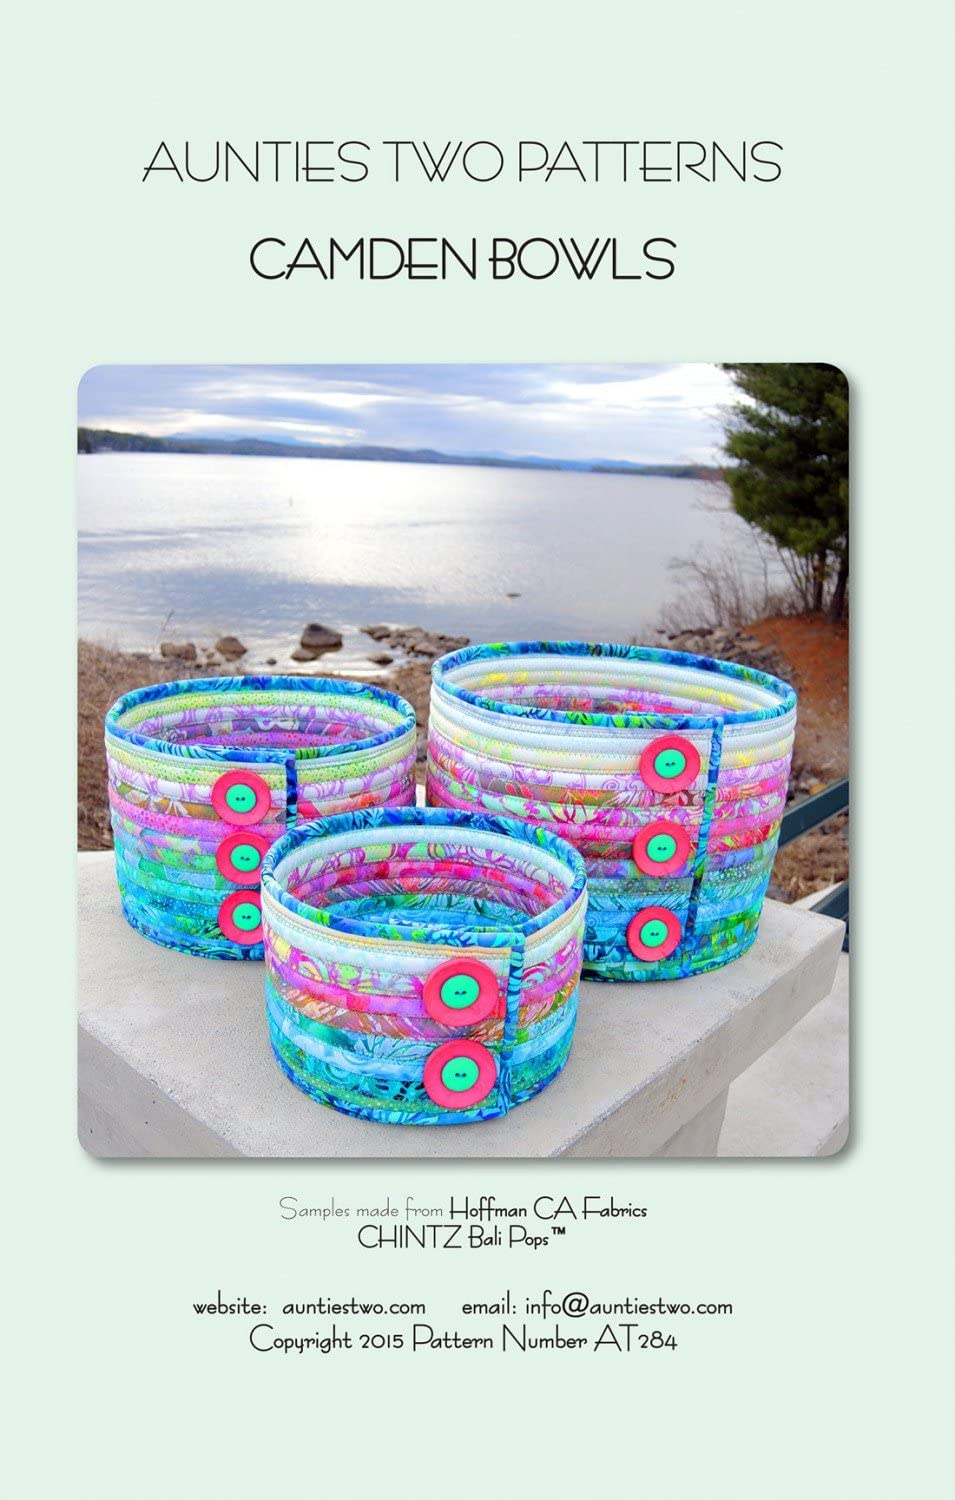 BALI BOWLS SEWING PATTERN from Aunties Two Patterns